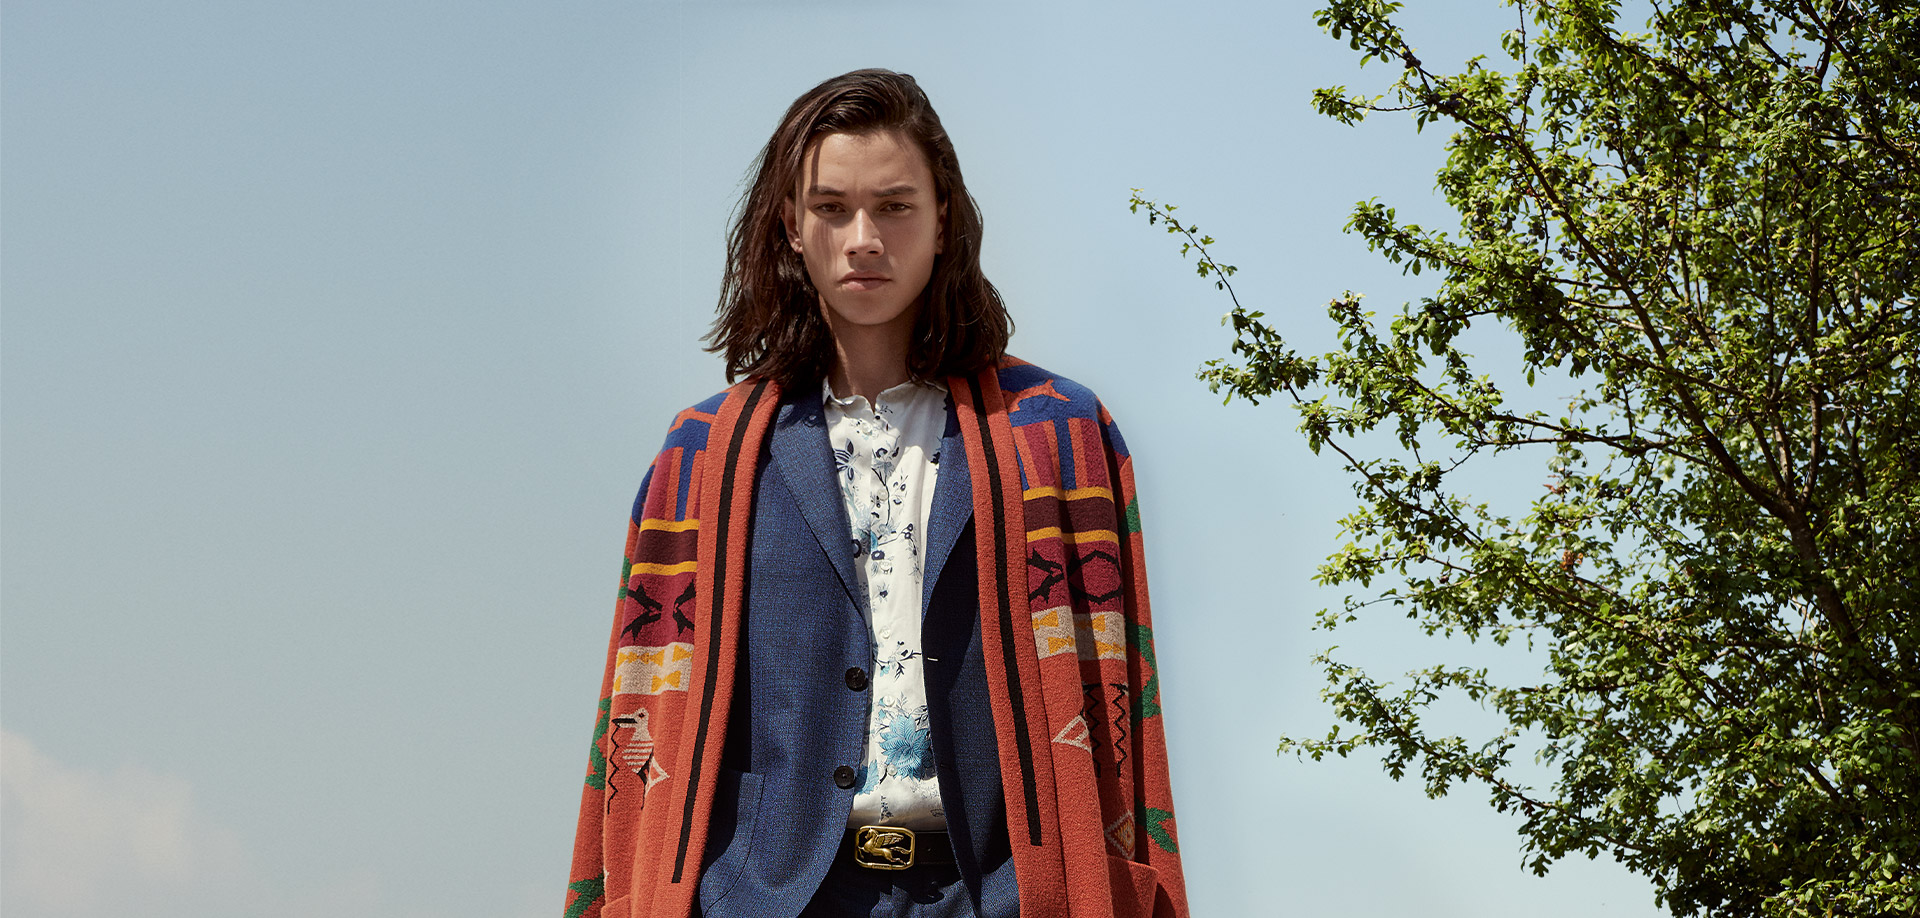 ETRO Official Website: Men's & Women's Clothing and Accessories